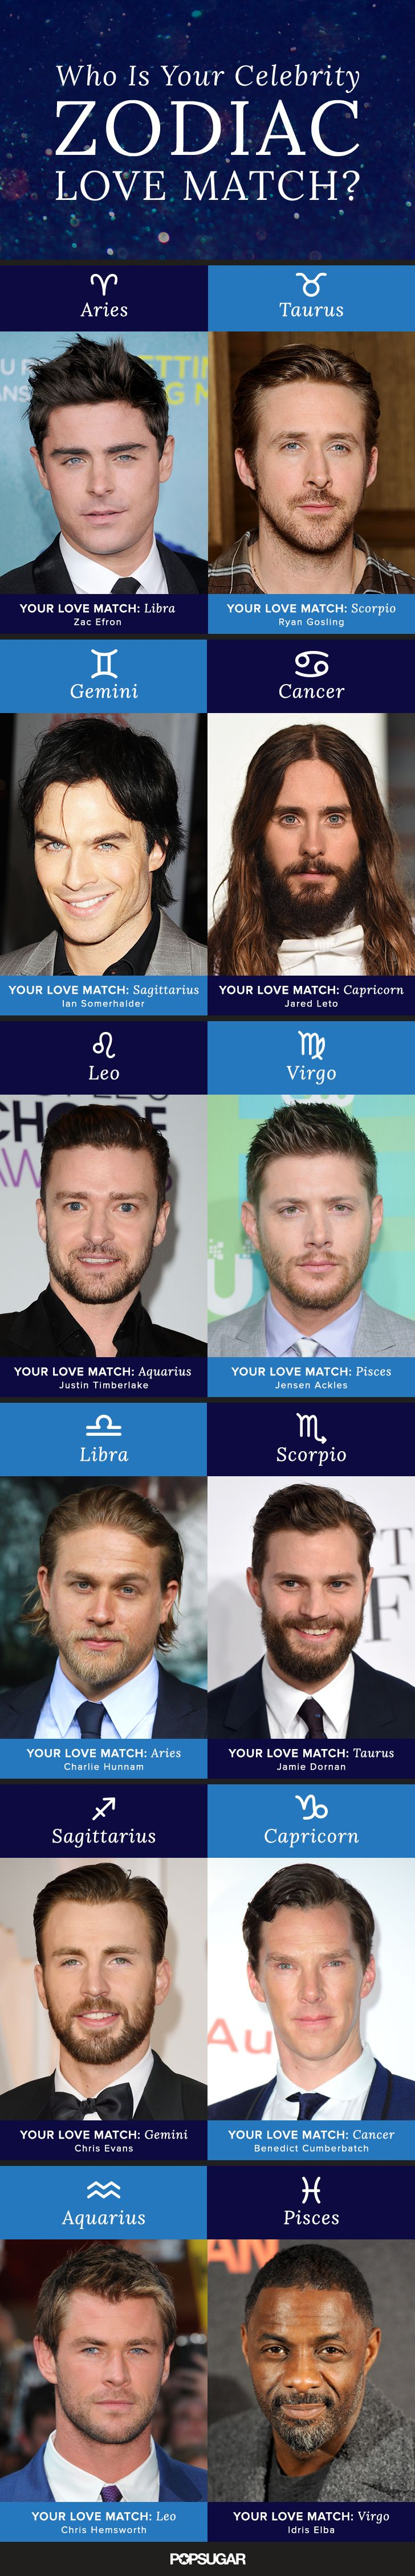 Want to know which celebrity is your love match? Just look to the stars. We have researched which zodiac signs are perfect for one another and paired you up accordingly. Now's the time to find out if your famous man-crush is your soul mate. And if you want to know how to really win him over, see how to attract the zodiac signs here.  Make sure to check out which celebrities share your zodiac sign as well.